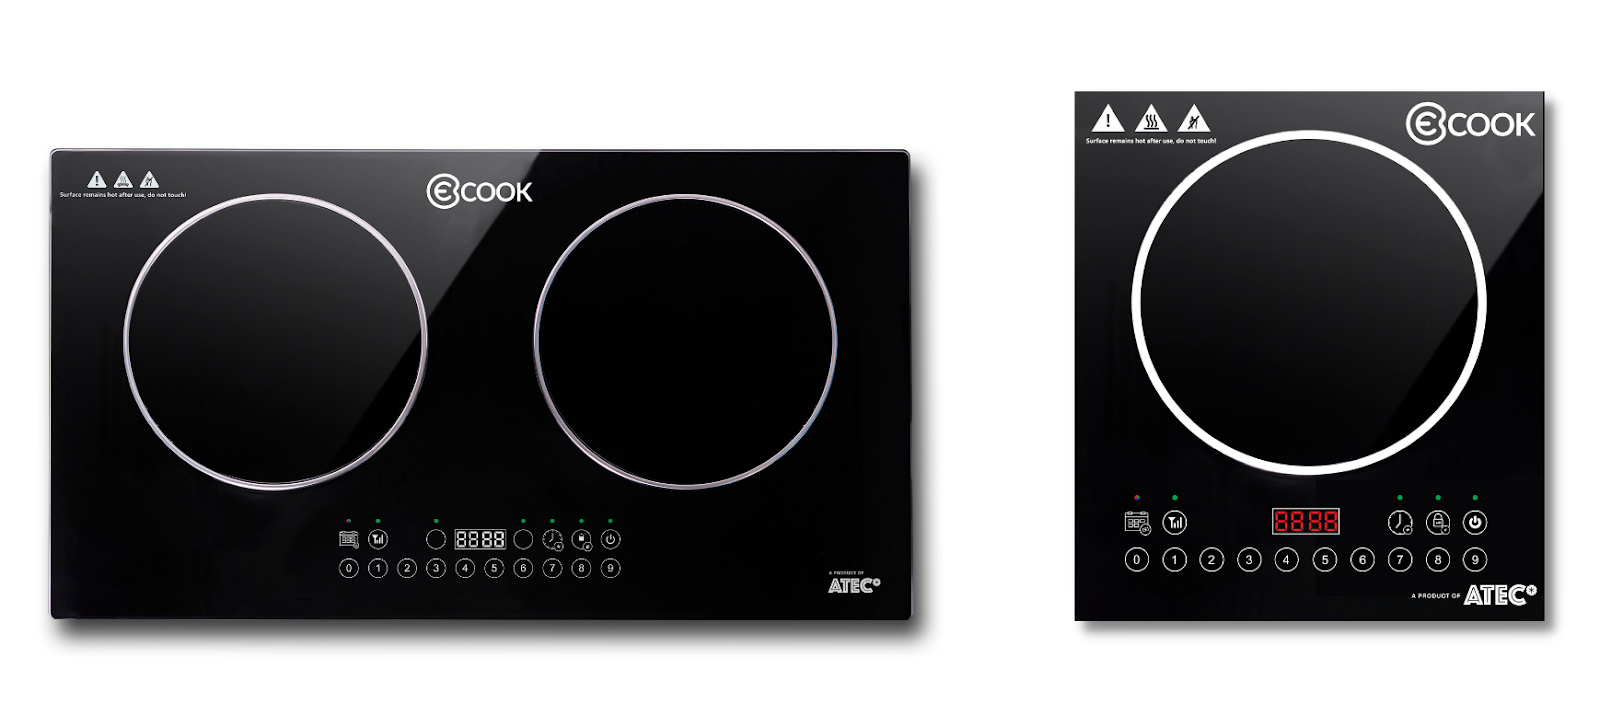 ATEC's eCook double burner and single burner cooktops